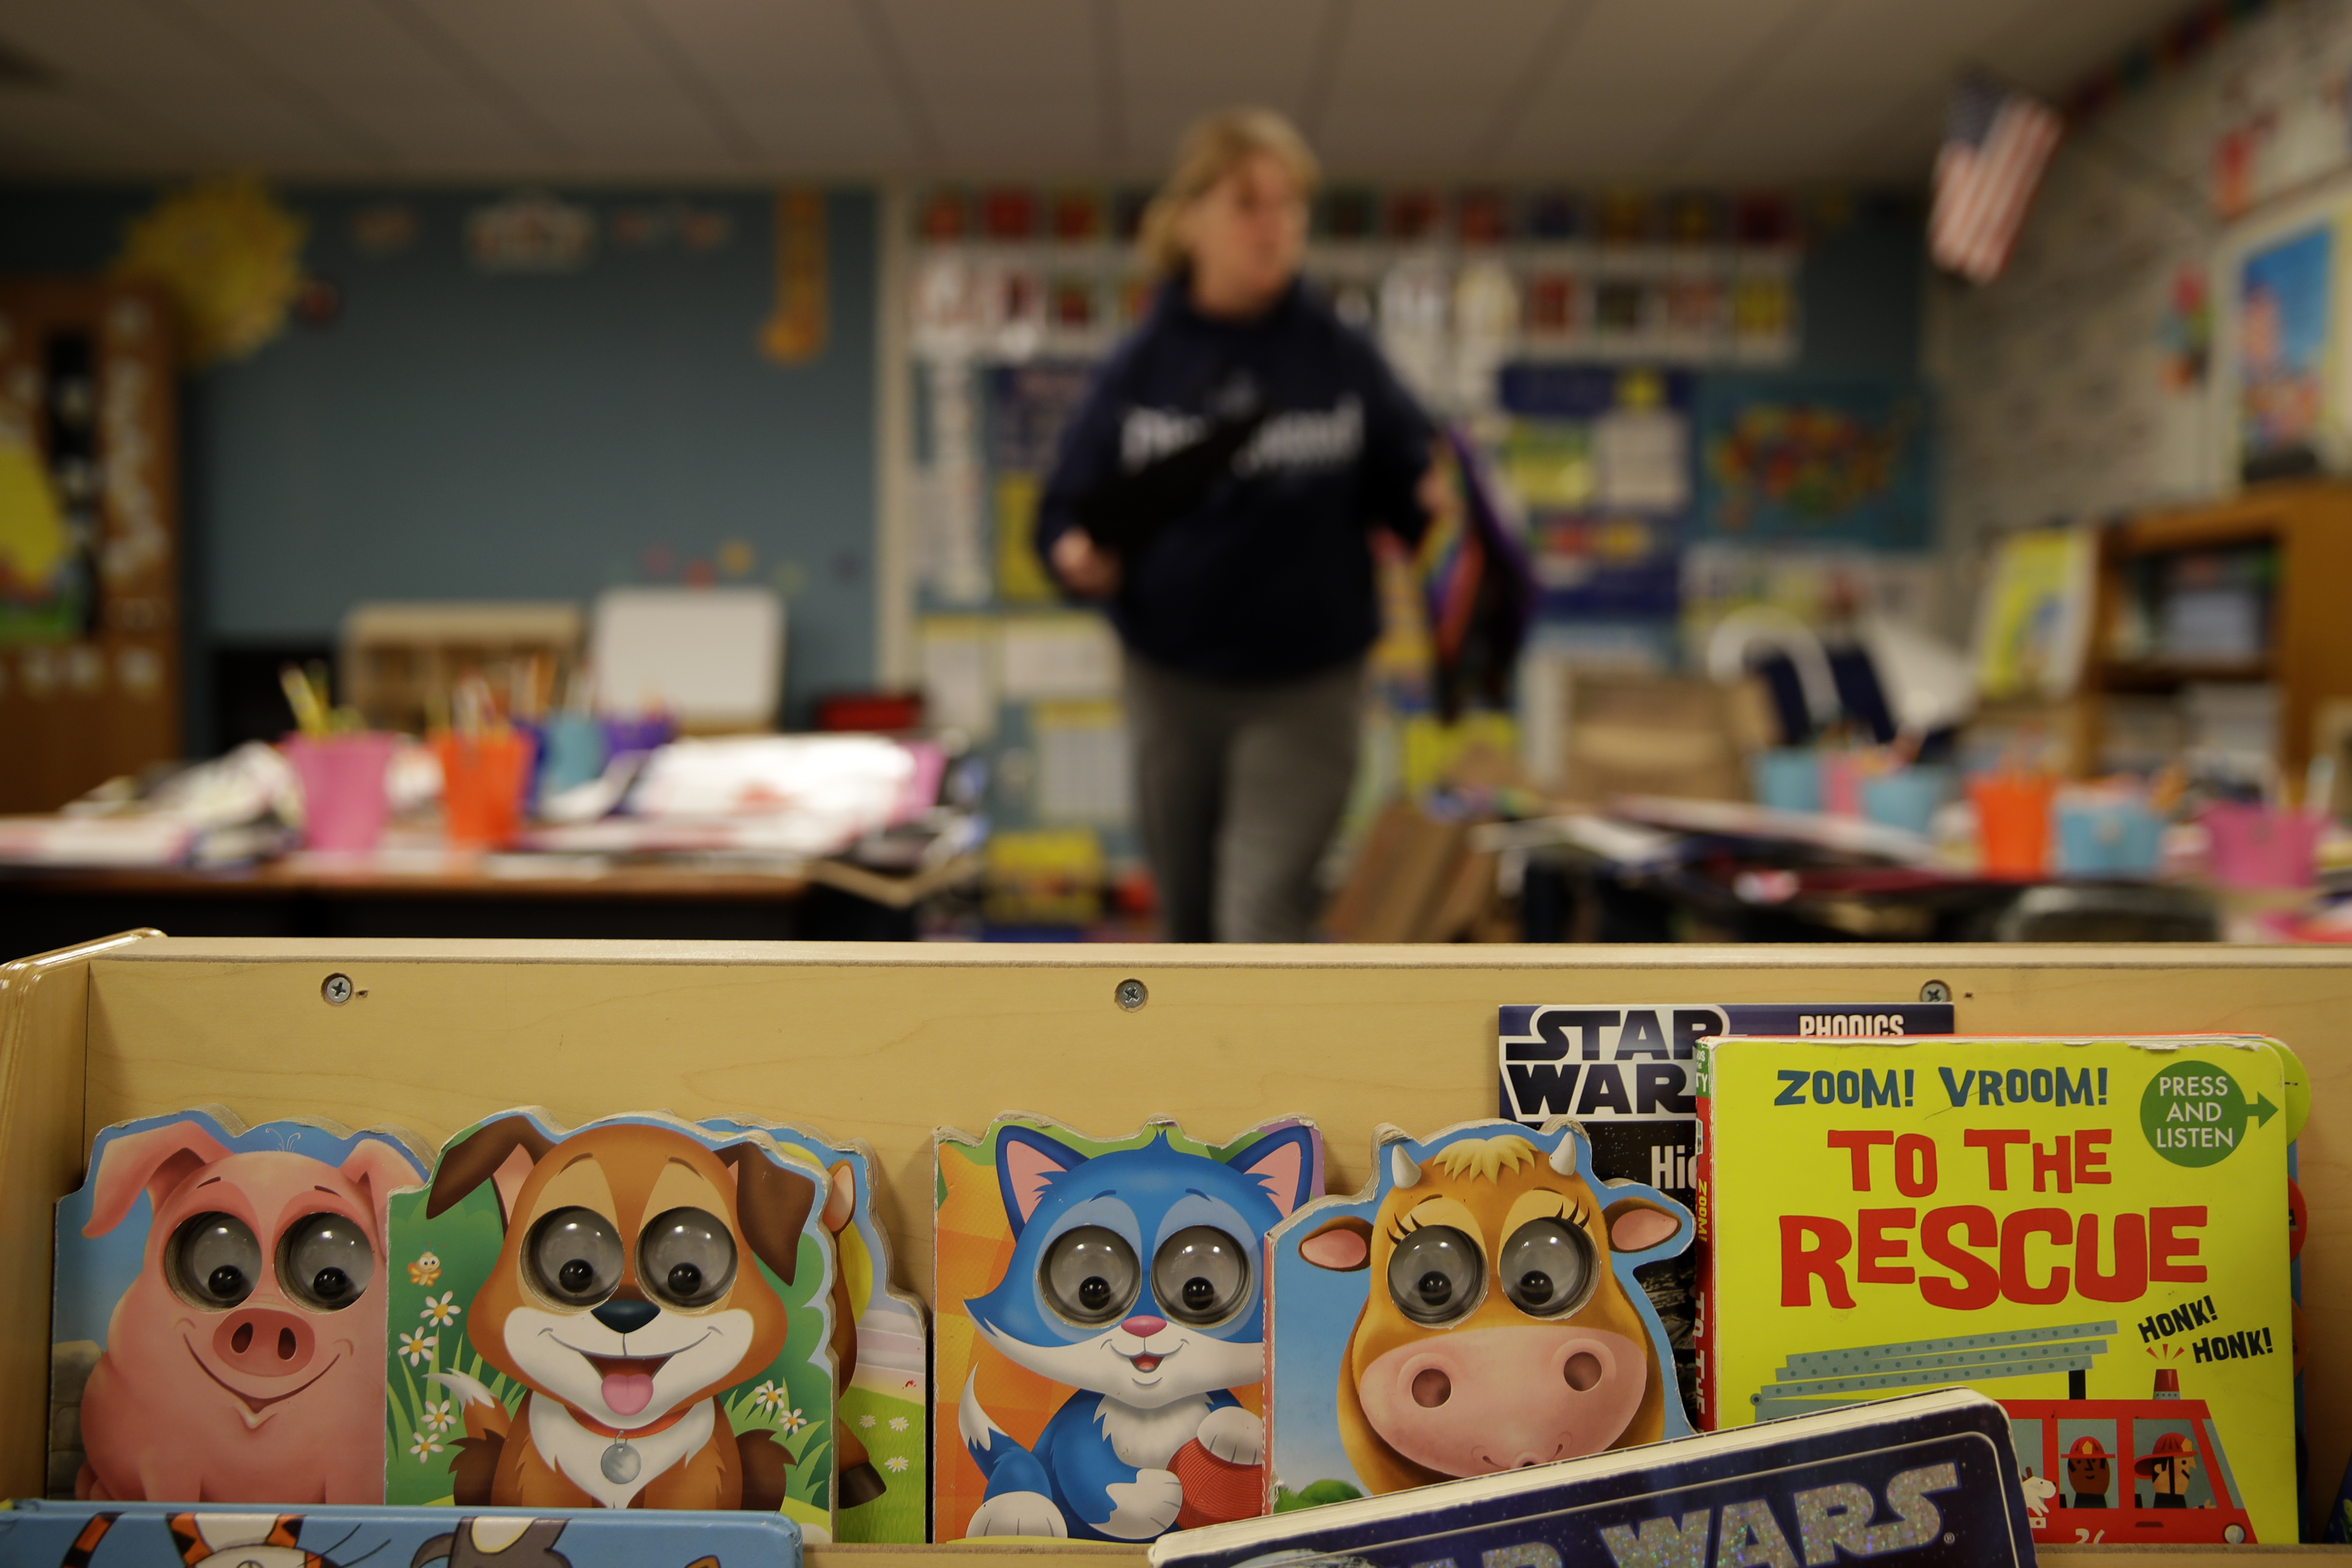 Jill Evans sorts students' belongings in her kindergarten classroom at Walnut Grove Elementary School in Olathe, Kansas, on May 12. The school closed on March 13, as all Kansas schools were ordered shut to help prevent the spread of the coronavirus and eventually ordered closed for the rest of the school year.